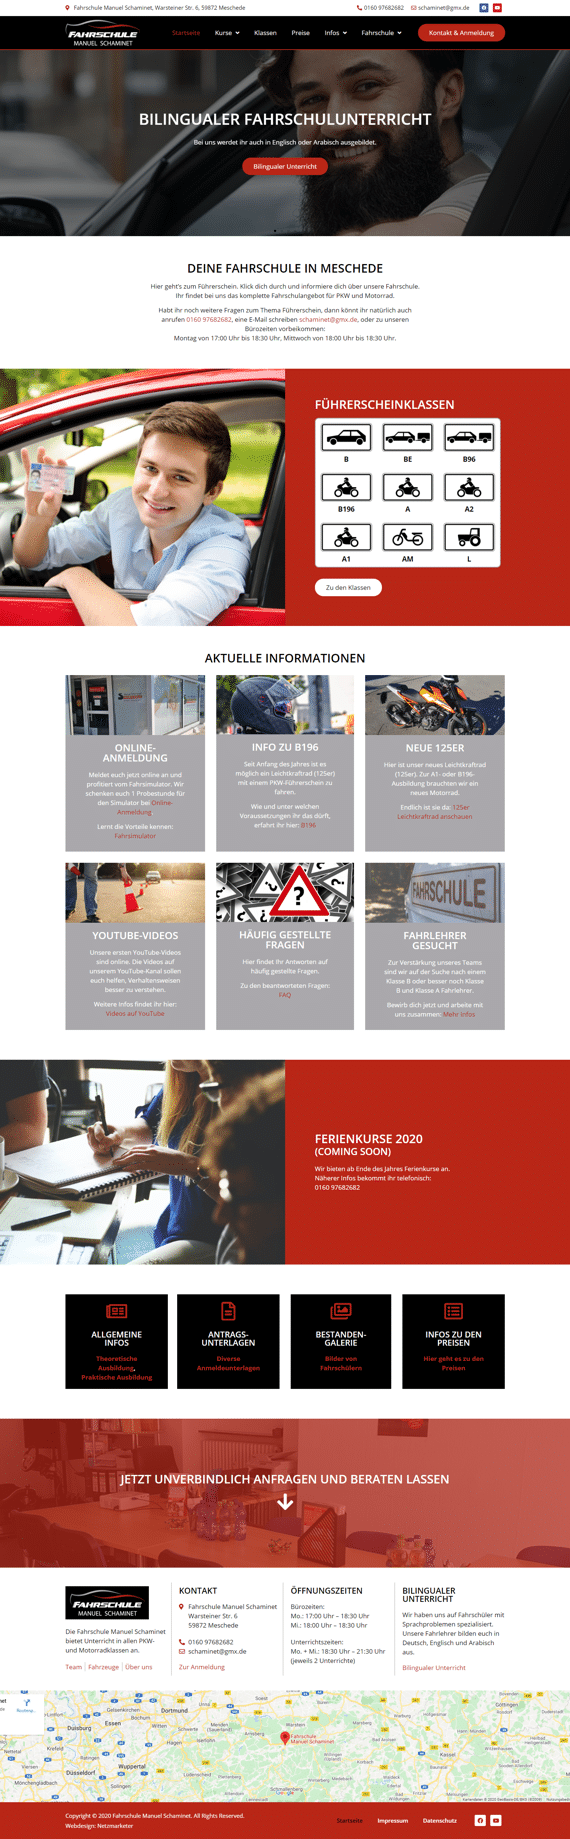 Schaminet - Website